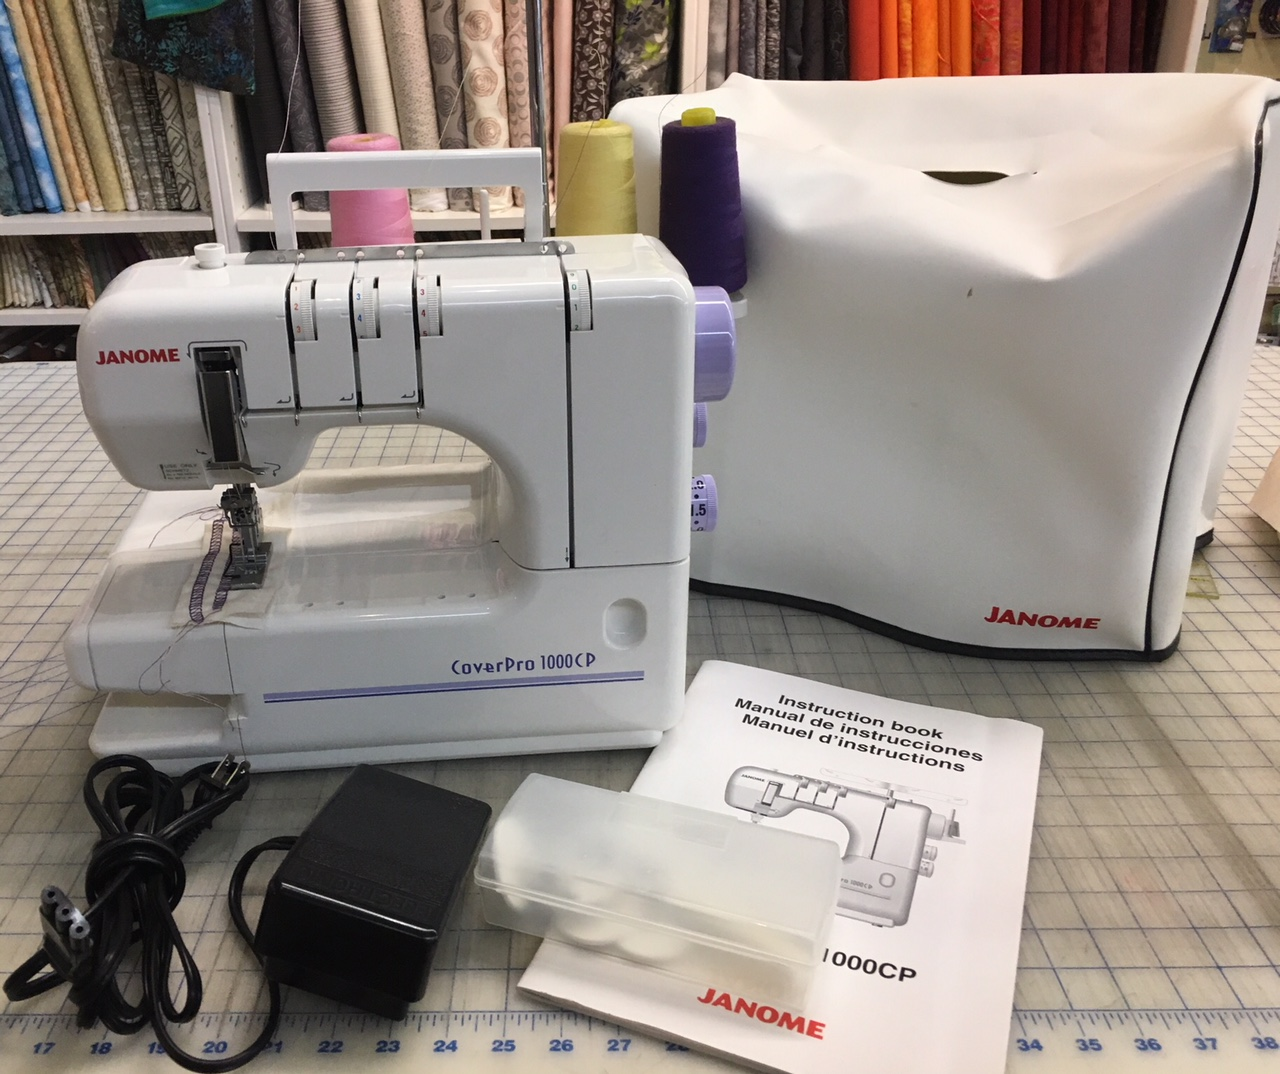 SOLD Janome 1000cp coverstitch machine - comes with dust cover, foot  control, instruction book & accessory box. It is an open arm machine and  can do triple ...